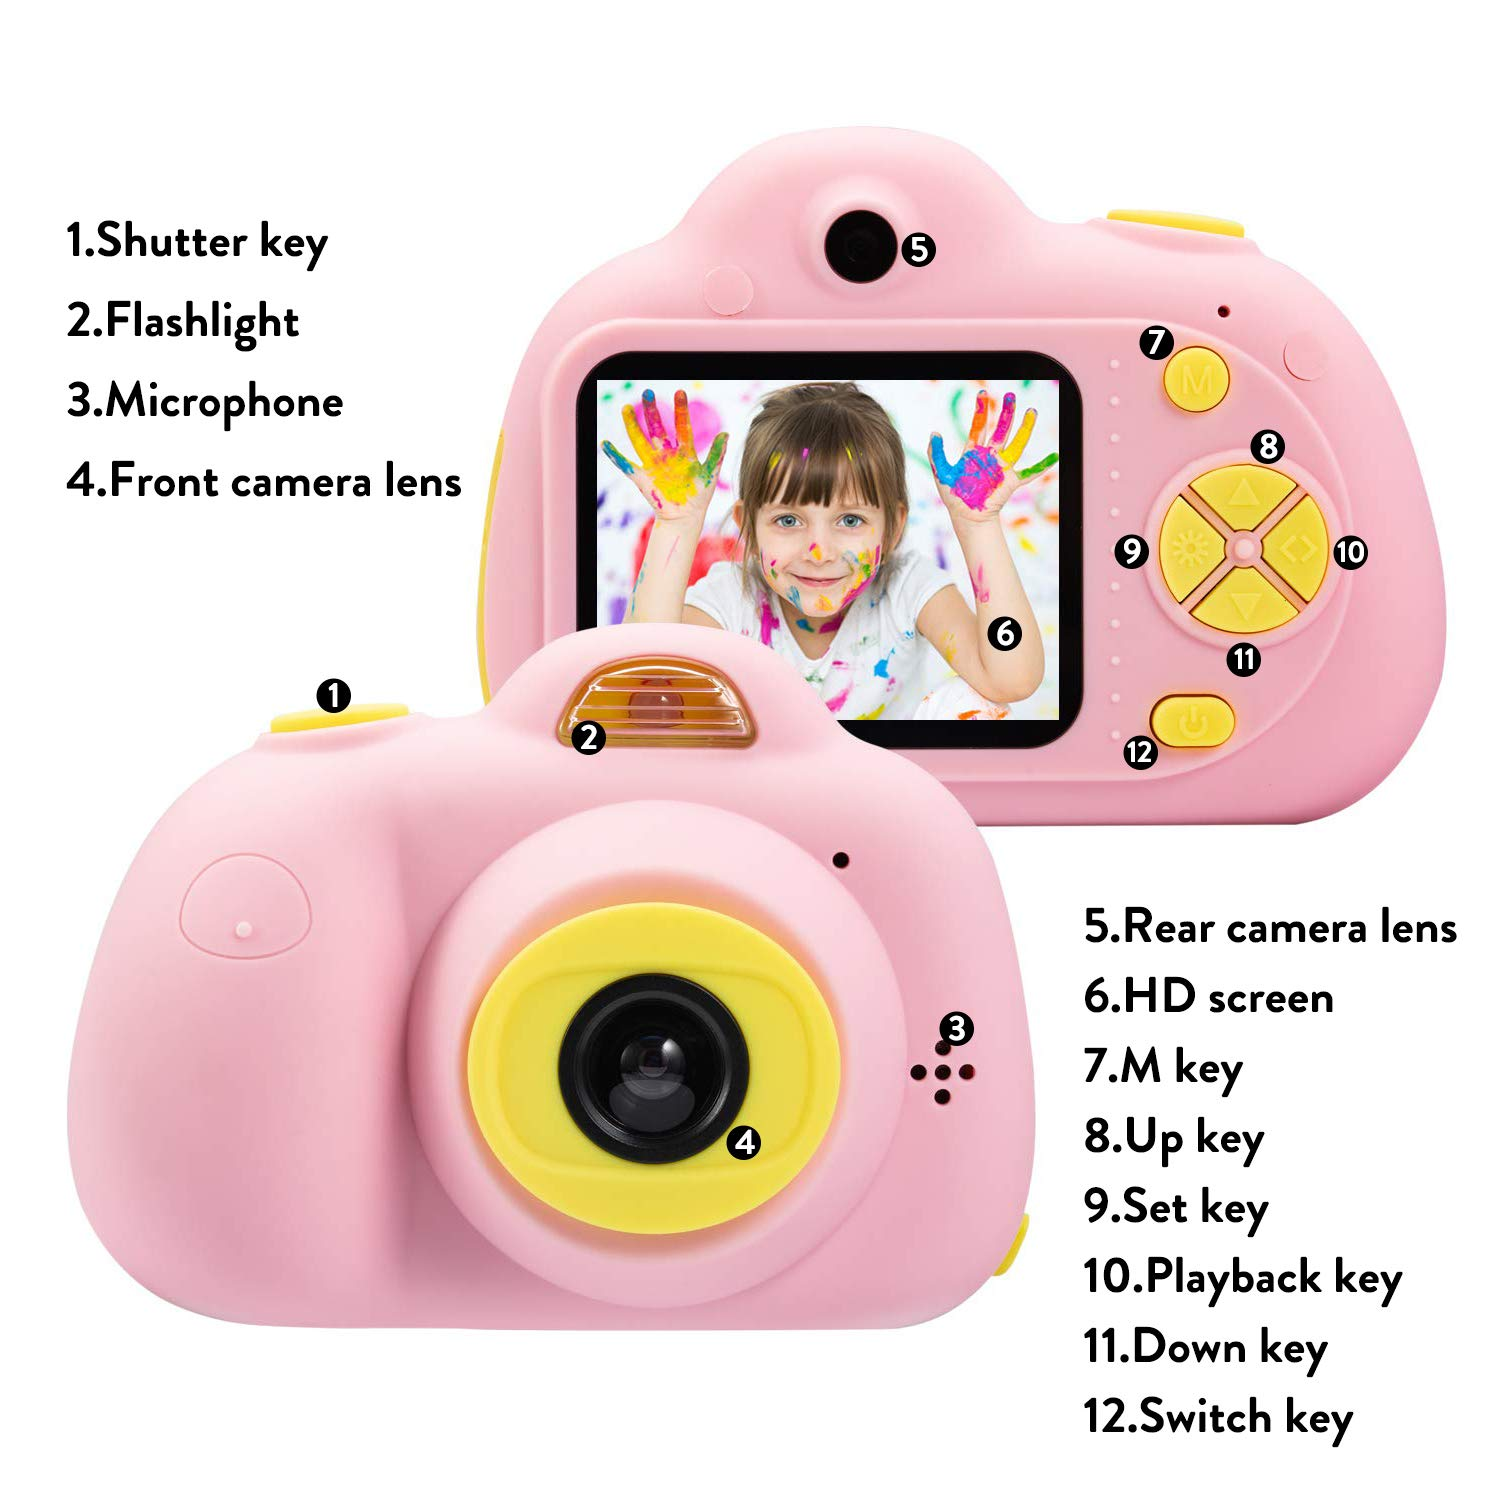 DIIGIITO Kids Camera Gifts for 4-8 Year Old Girls, Shockproof Cameras Great Gift Mini Child Camcorder for Little Girl with Soft Silicone Shell for Outdoor Play,(16GB Memory Card Included) (Pink) by DIIGIITO (Image #3)